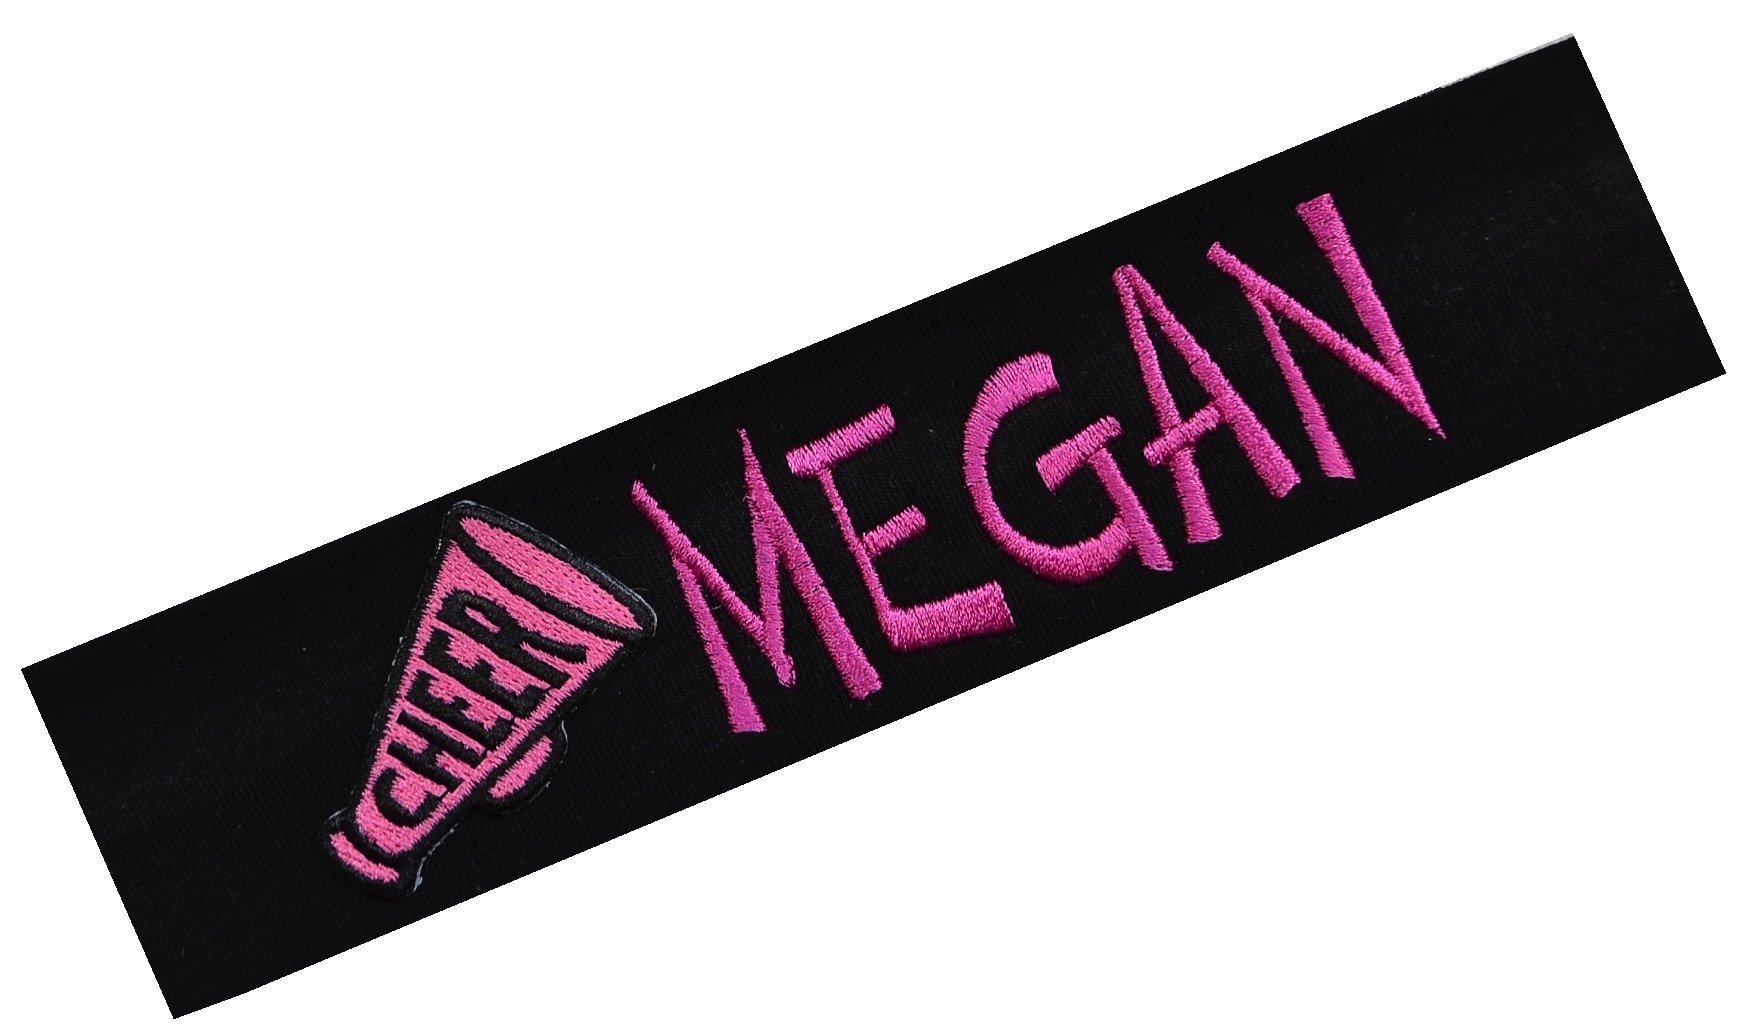 Personalized Embroidered Cheerleading Cotton Stretch Headband by Funny Girl Designs - Your Custom Text! (MAROON HEADBAND)